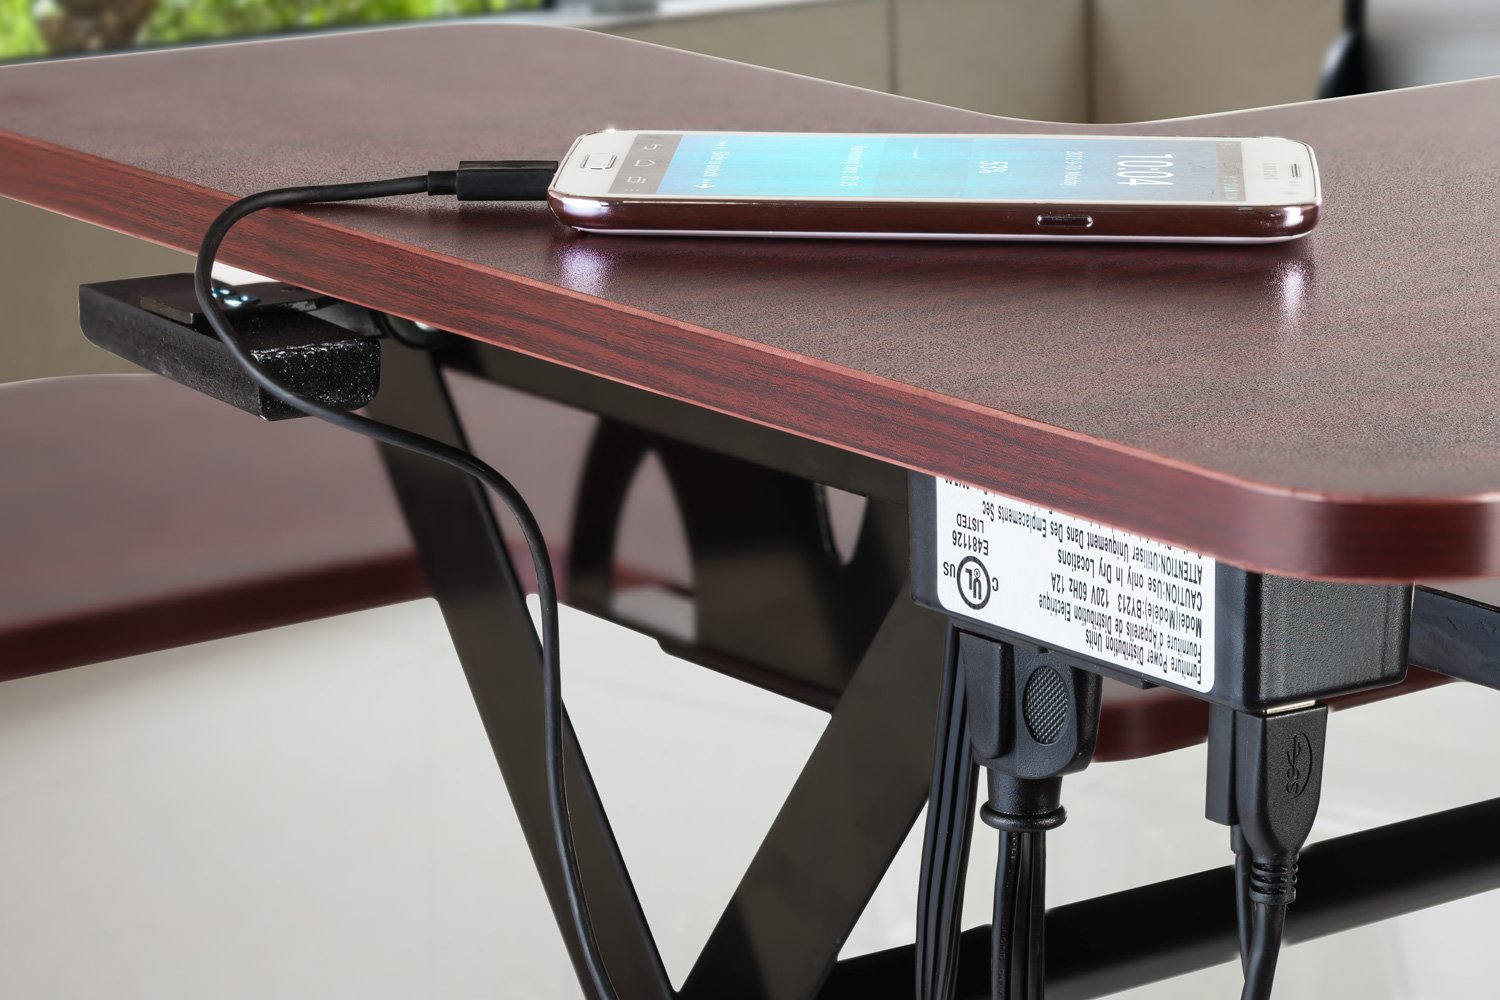 Halter ED-259 Preassembled Height Adjustable Desk Sit / Stand Elevating Desktop with 2 Power Outlets and 2 USB Charging Ports by Halter (Image #9)